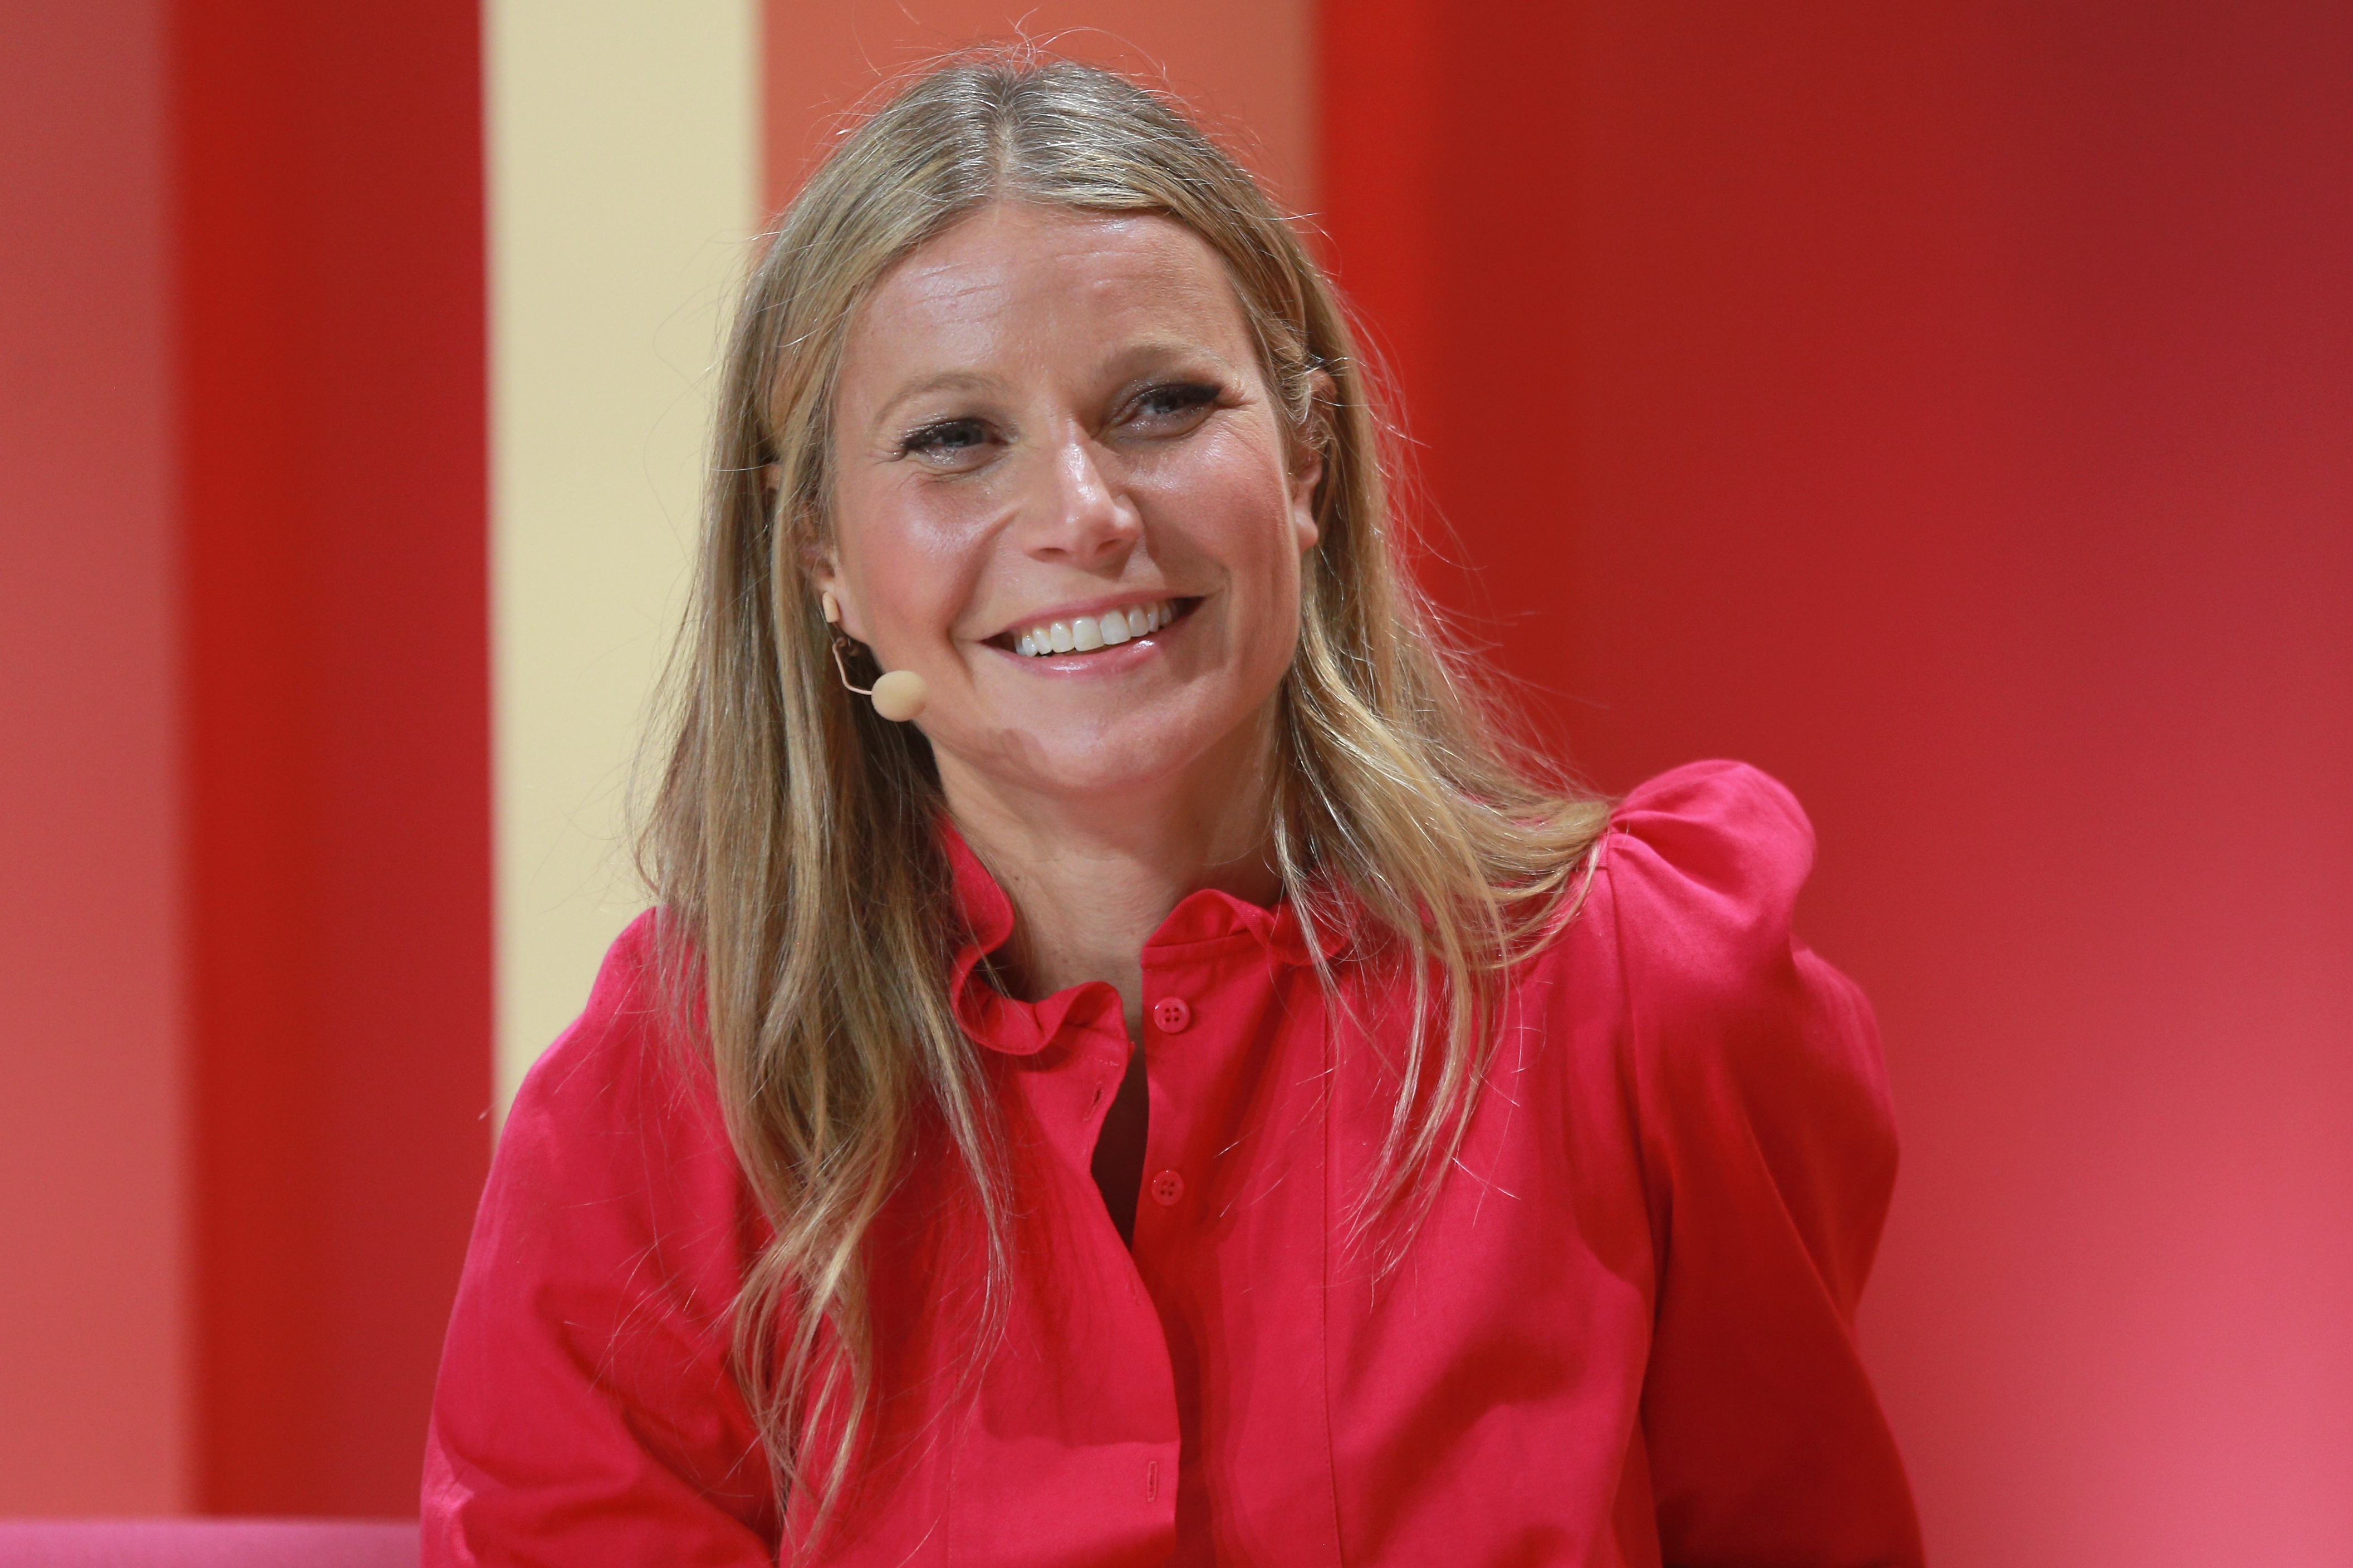 AB Gwynth Paltrow Getty Images